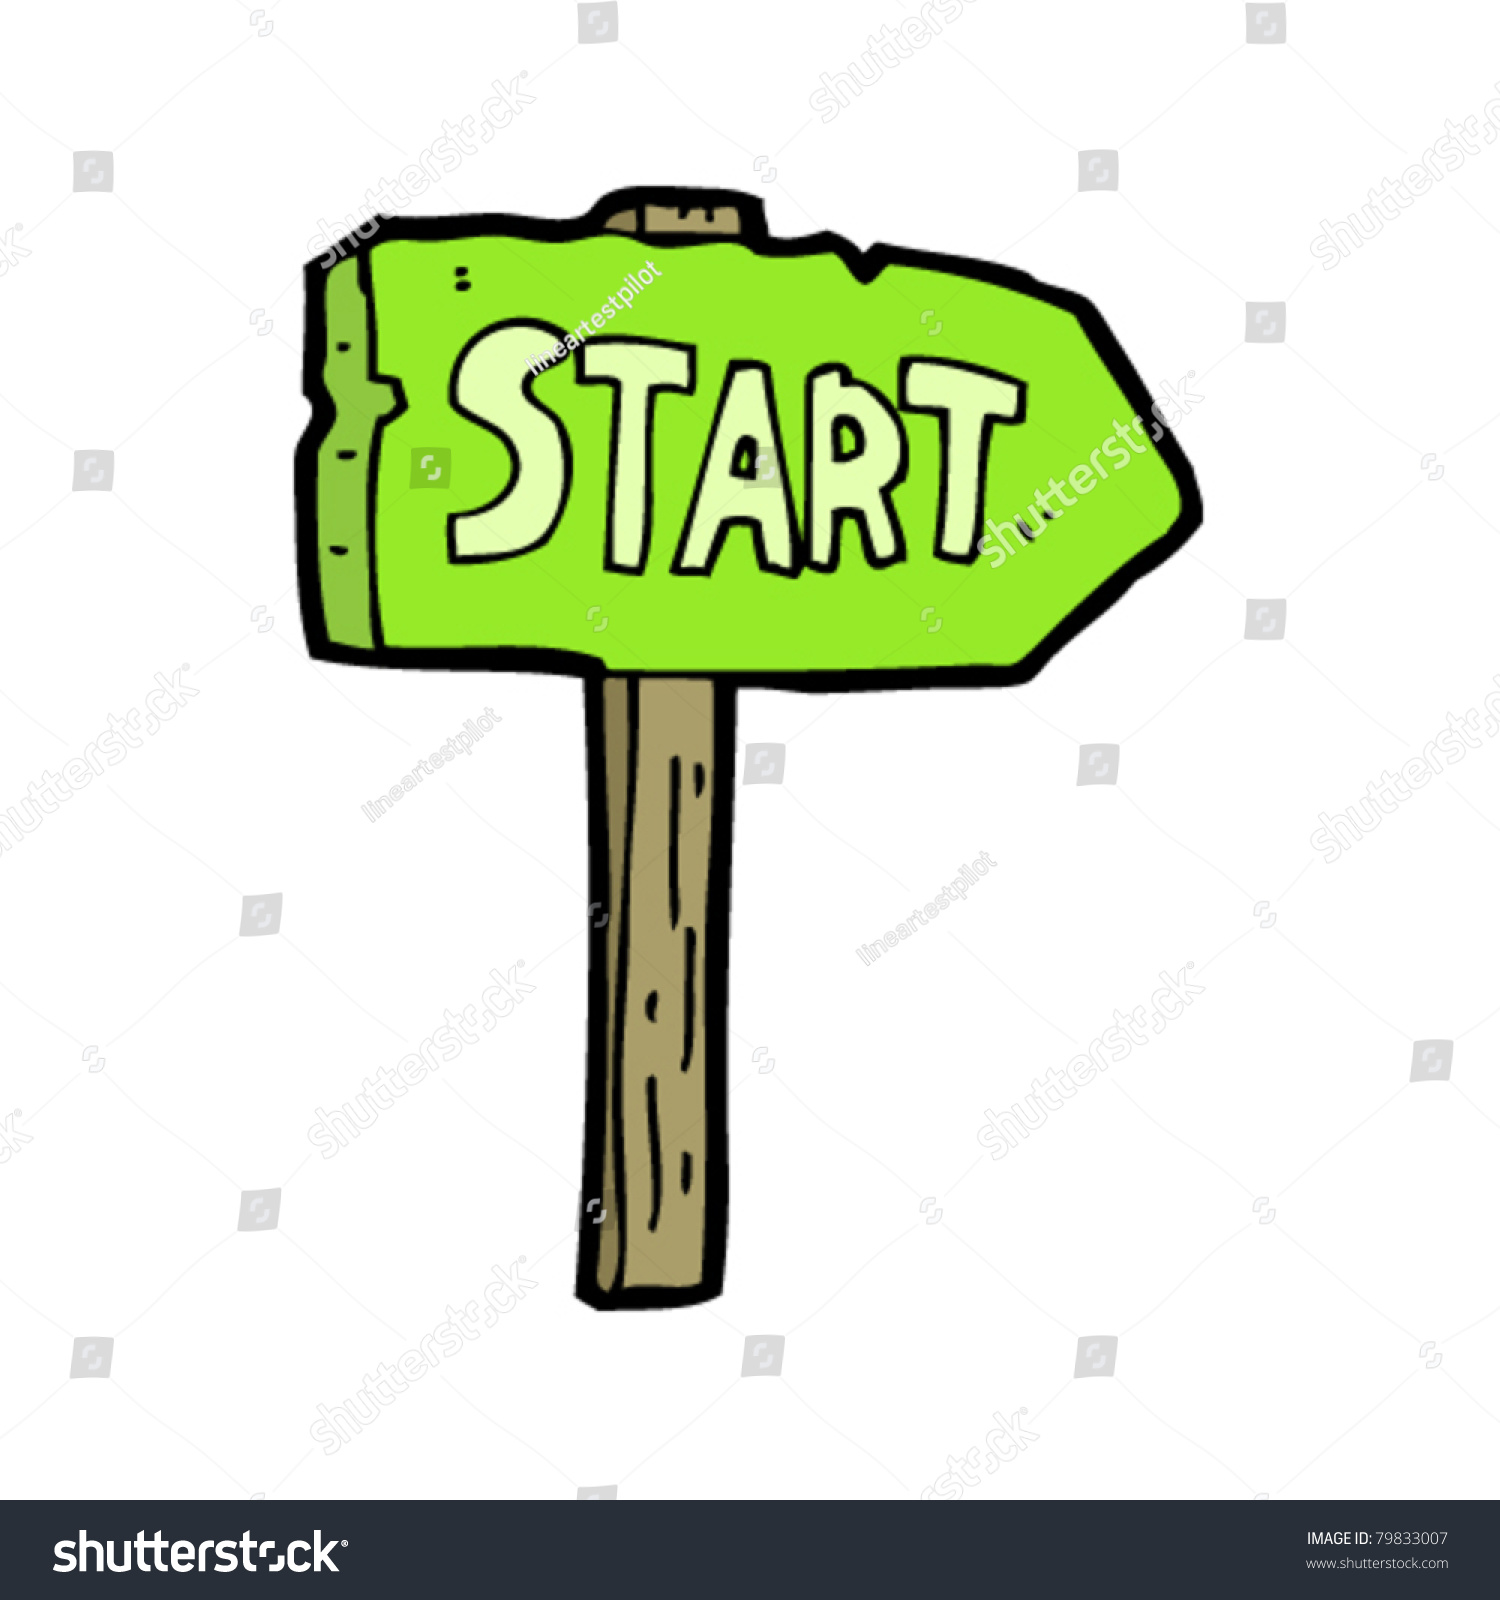 start sign cartoon stock vector royalty free 79833007 shutterstock